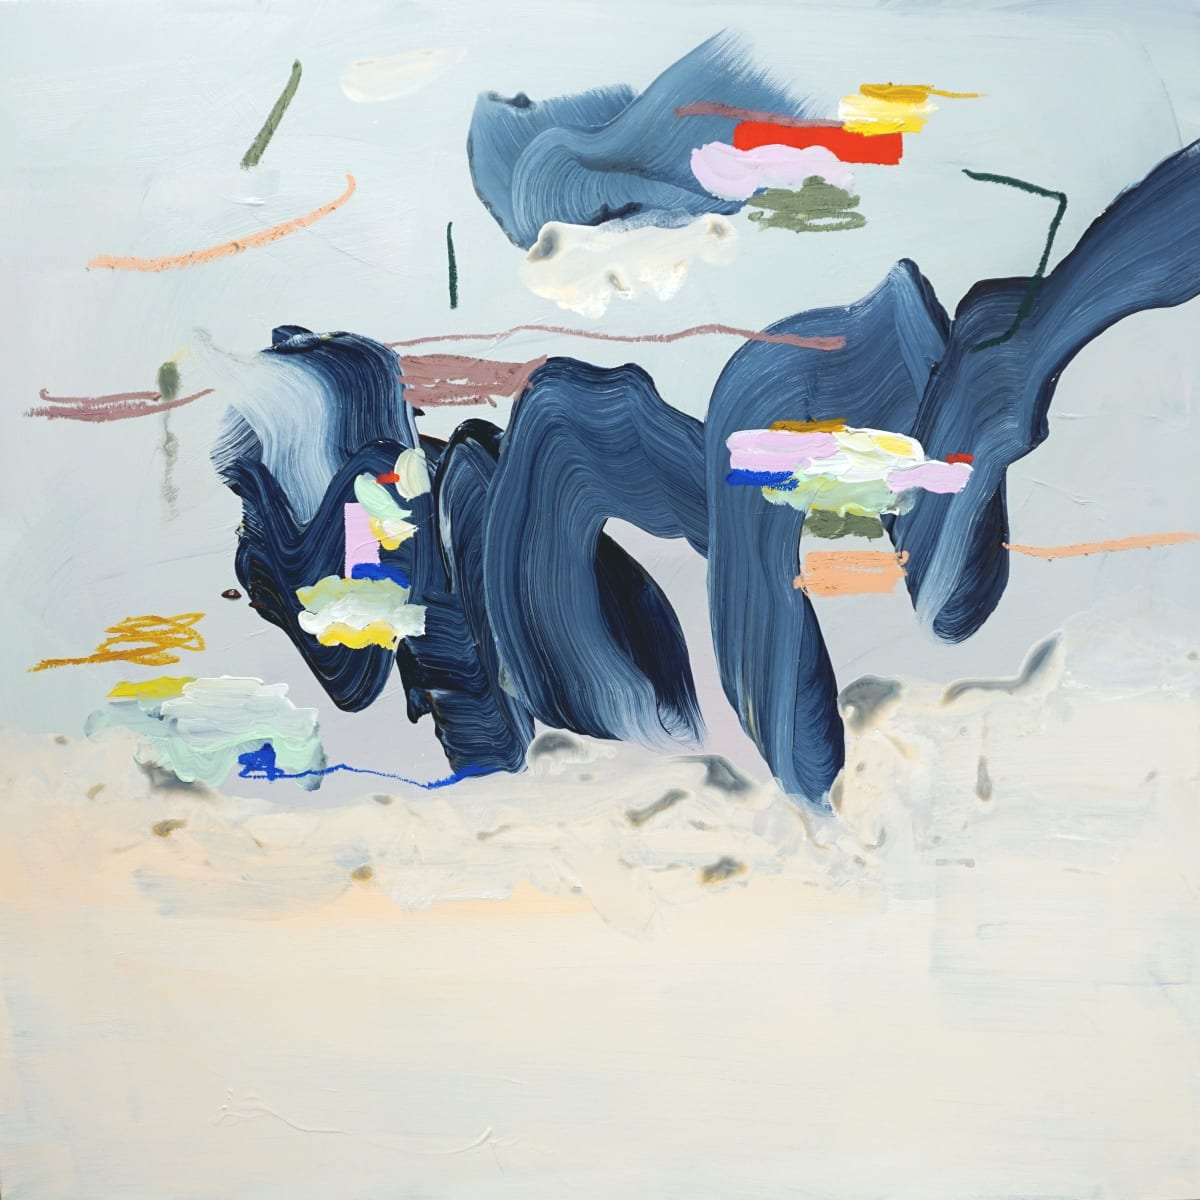 Untitled (working title) - Janna Watson and other TBA